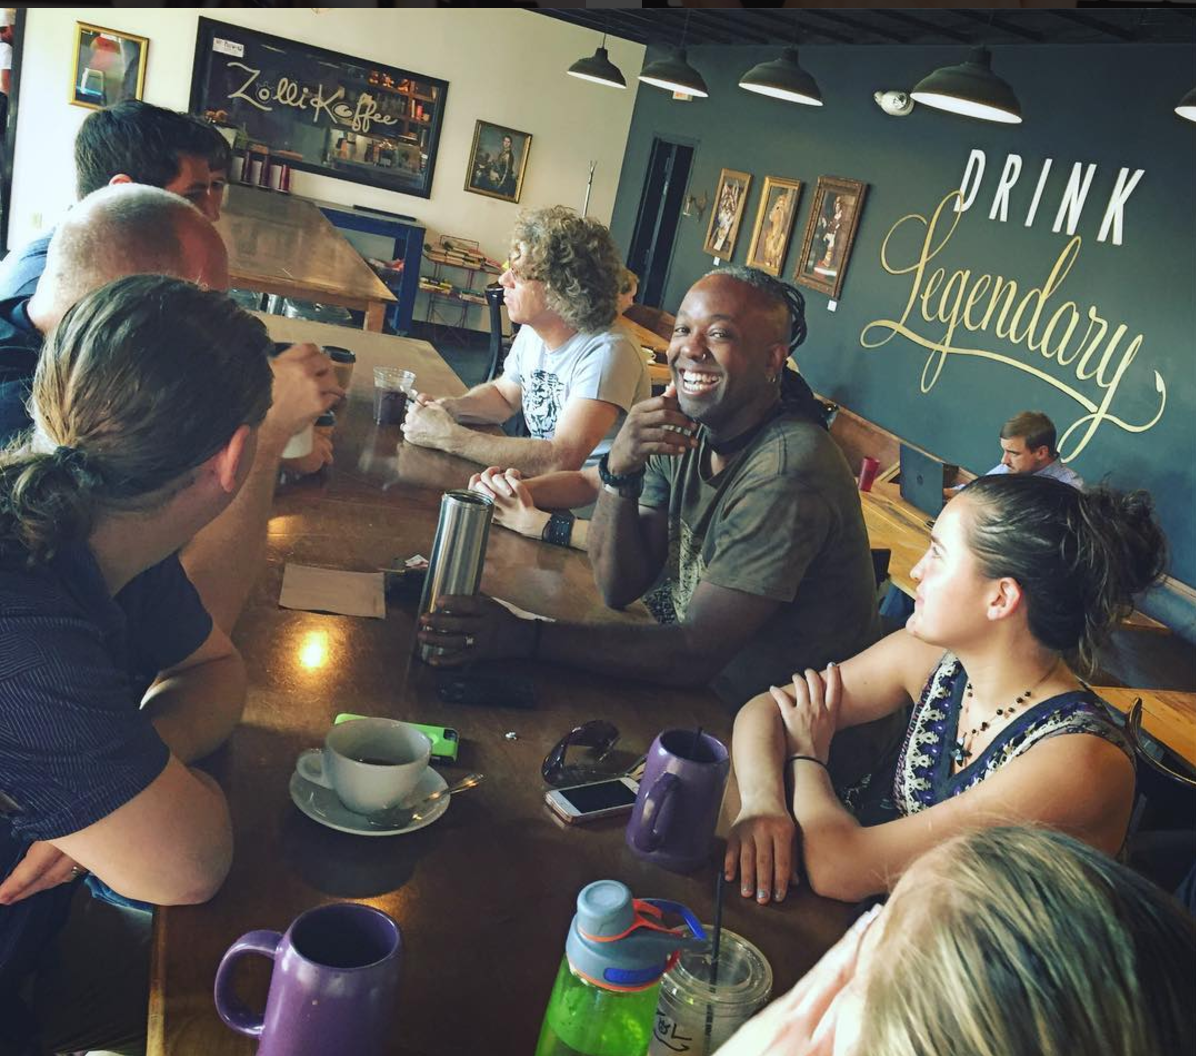 We meet weekly at a local coffeeshop, and we've had about 200 people cycle through since we first launched it.